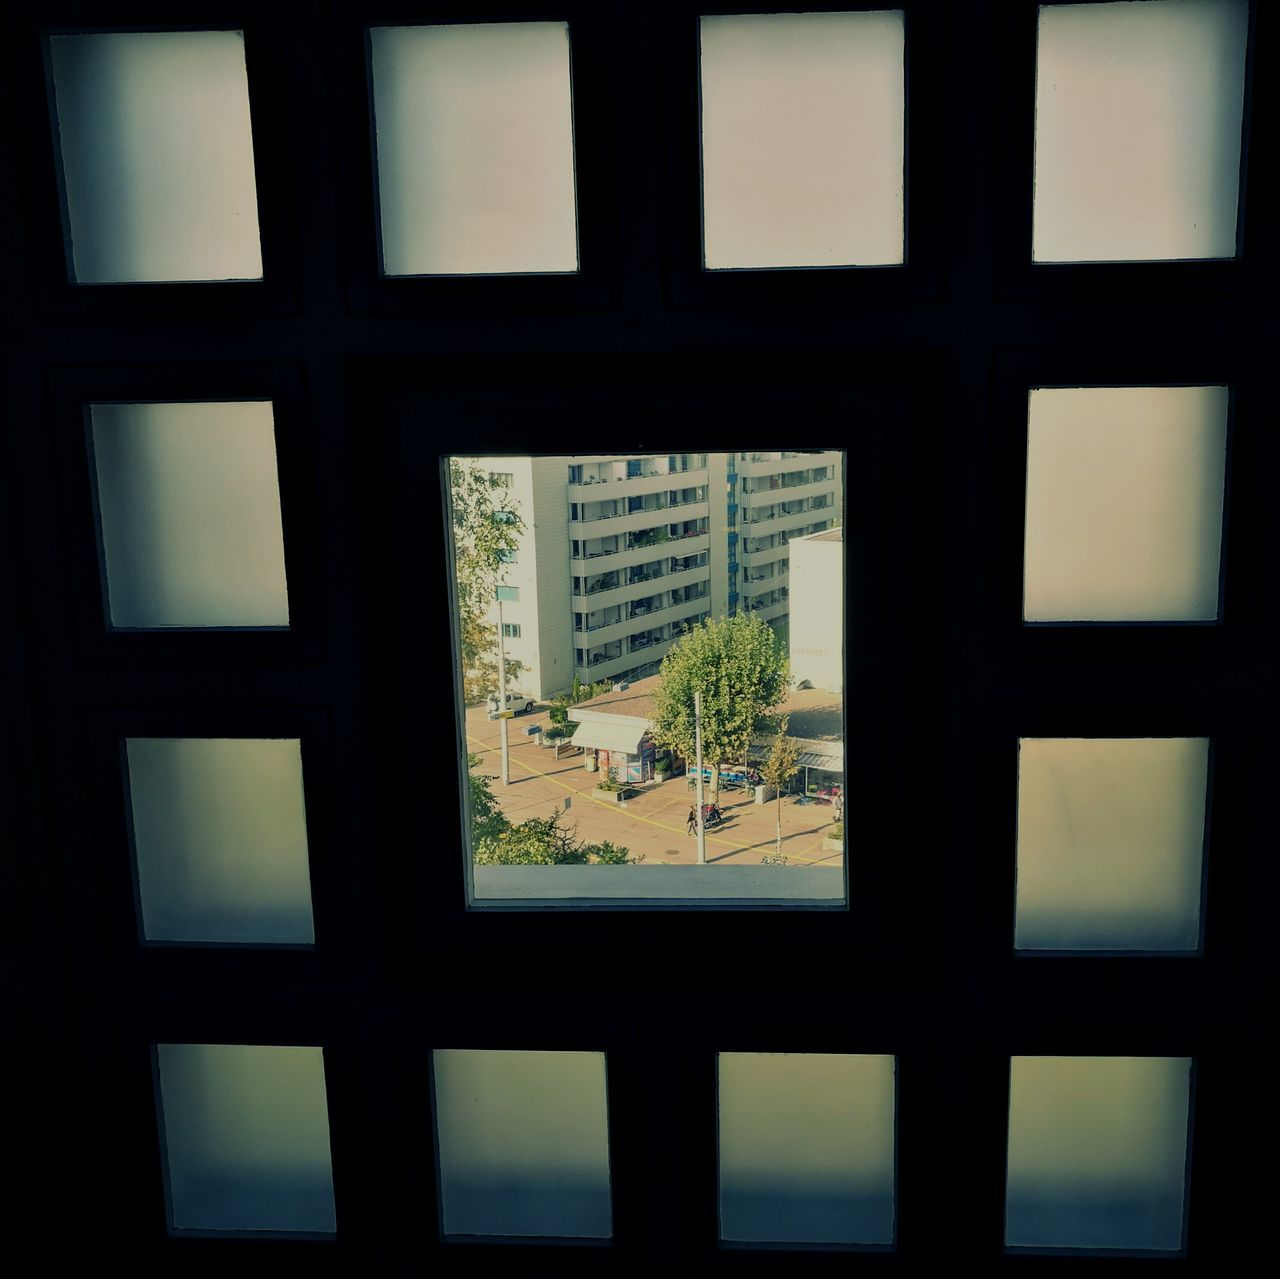 Window Glass - Material Window Frame Geometric Shape Indoors  Geometric Forms Full Frame Taking Photos EyeEm Gallery The Week Of Eyeem From My Point Of View Urban Photography Trough The Glass Trough The Window Urban Geometry Architectural Detail EyeEm Best Shots Frame In Frame Framed The Week On Eyem The Week On EyeEem